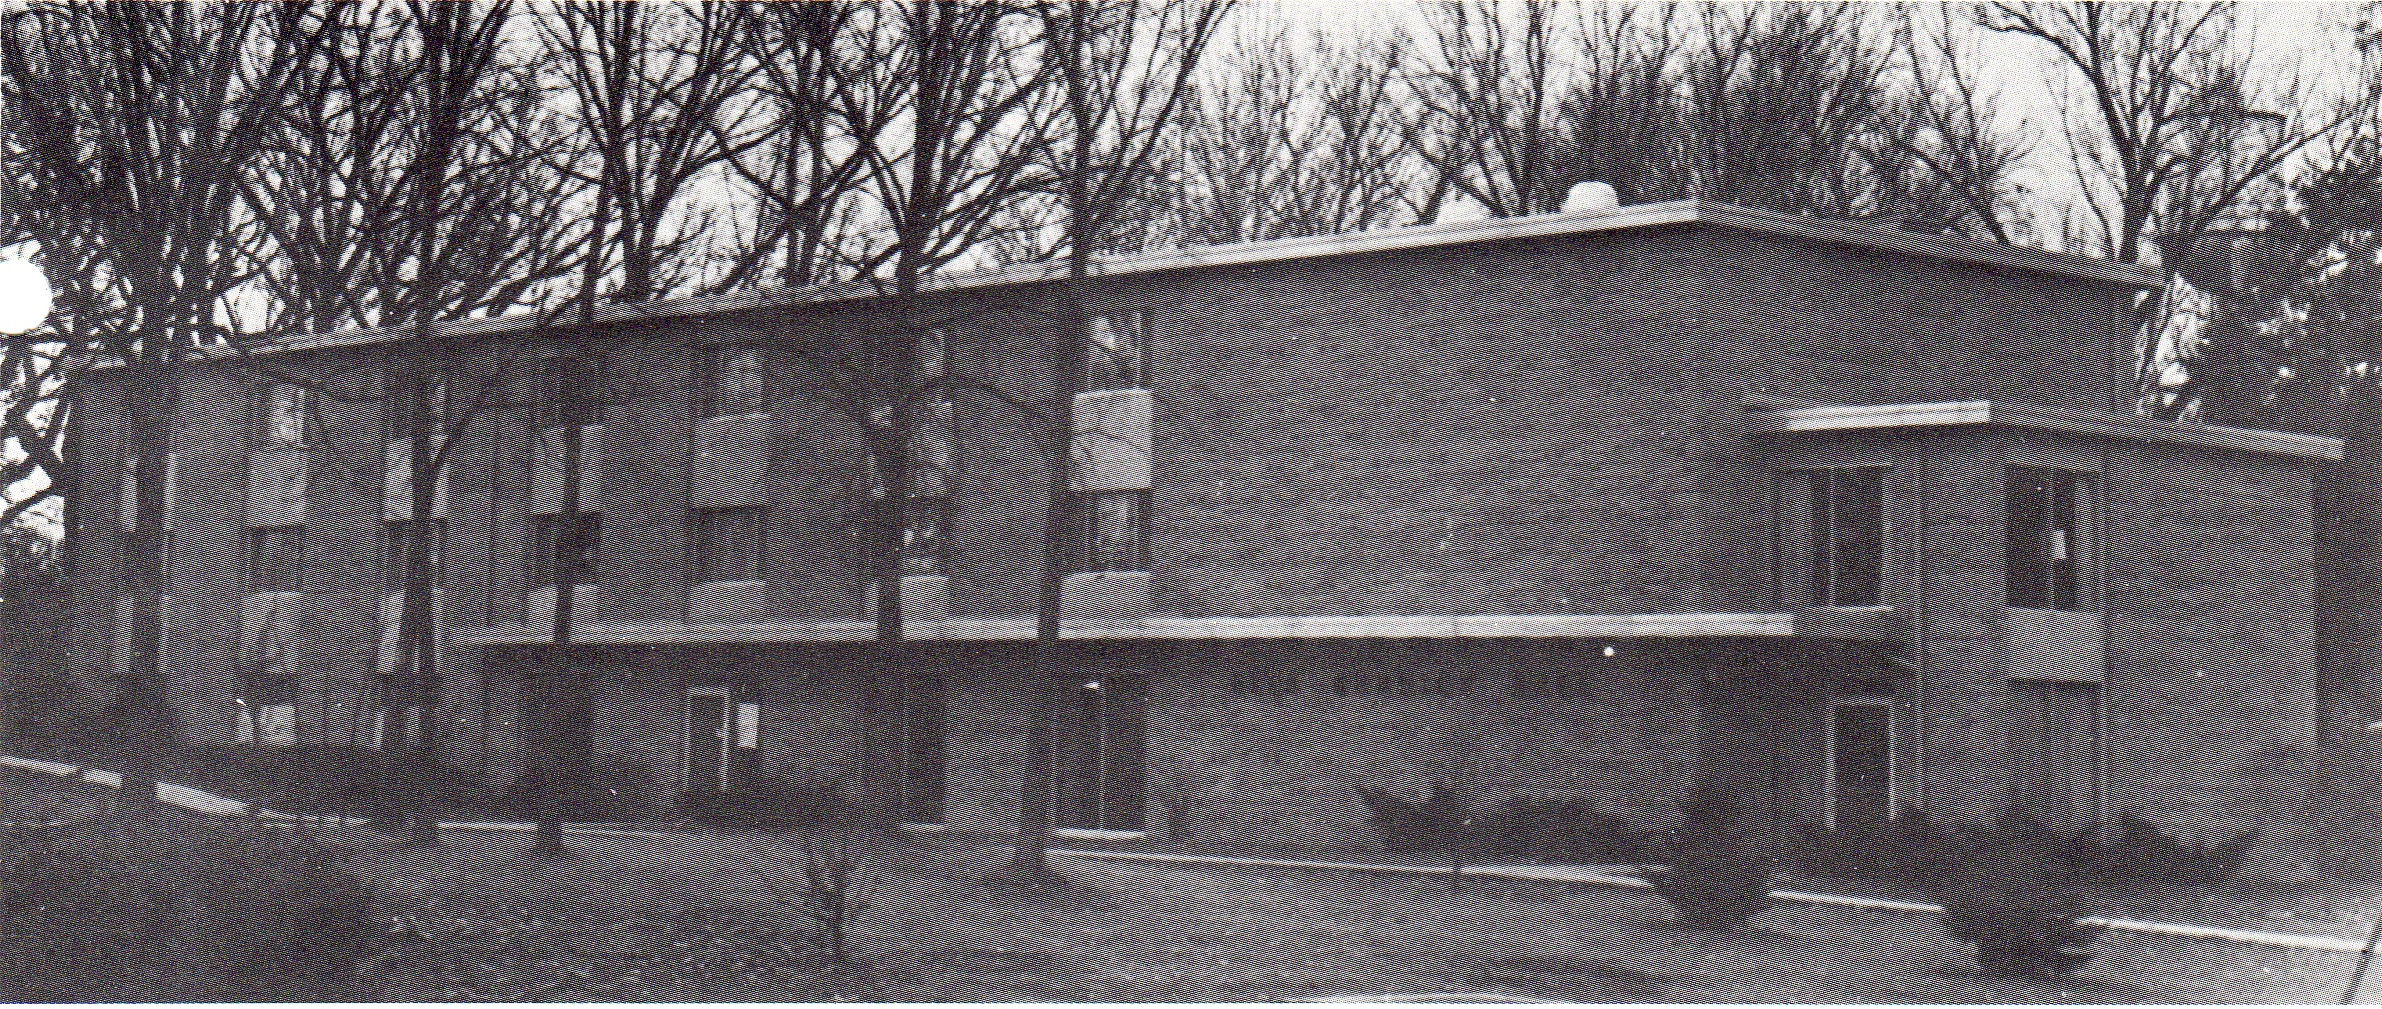 Burdick Hall and Student Services